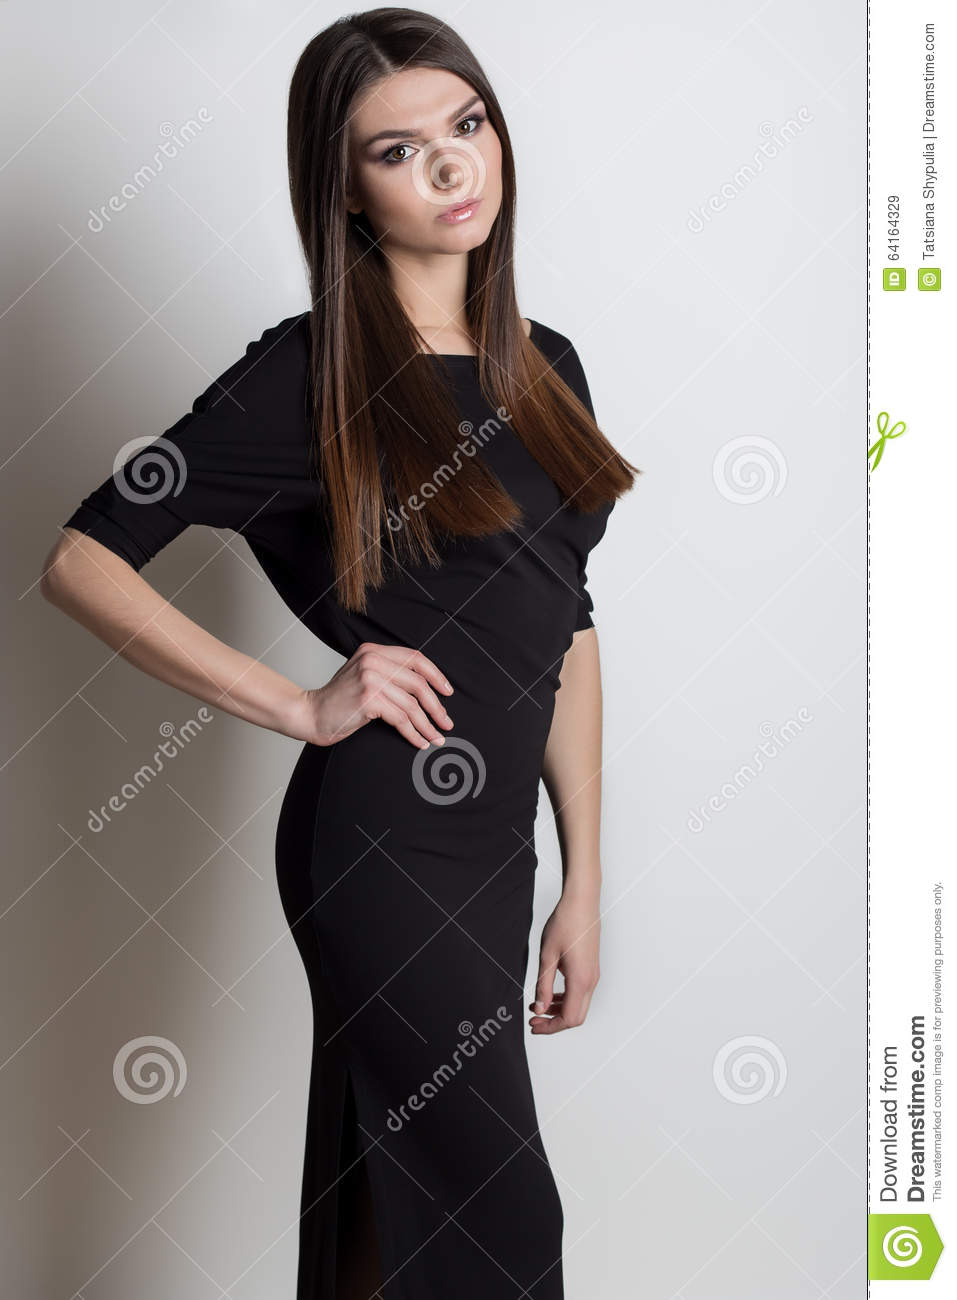 Black dress hairstyle - Beautiful Elegant Woman With Long Hair Bright Evening Make Up In A Black Evening